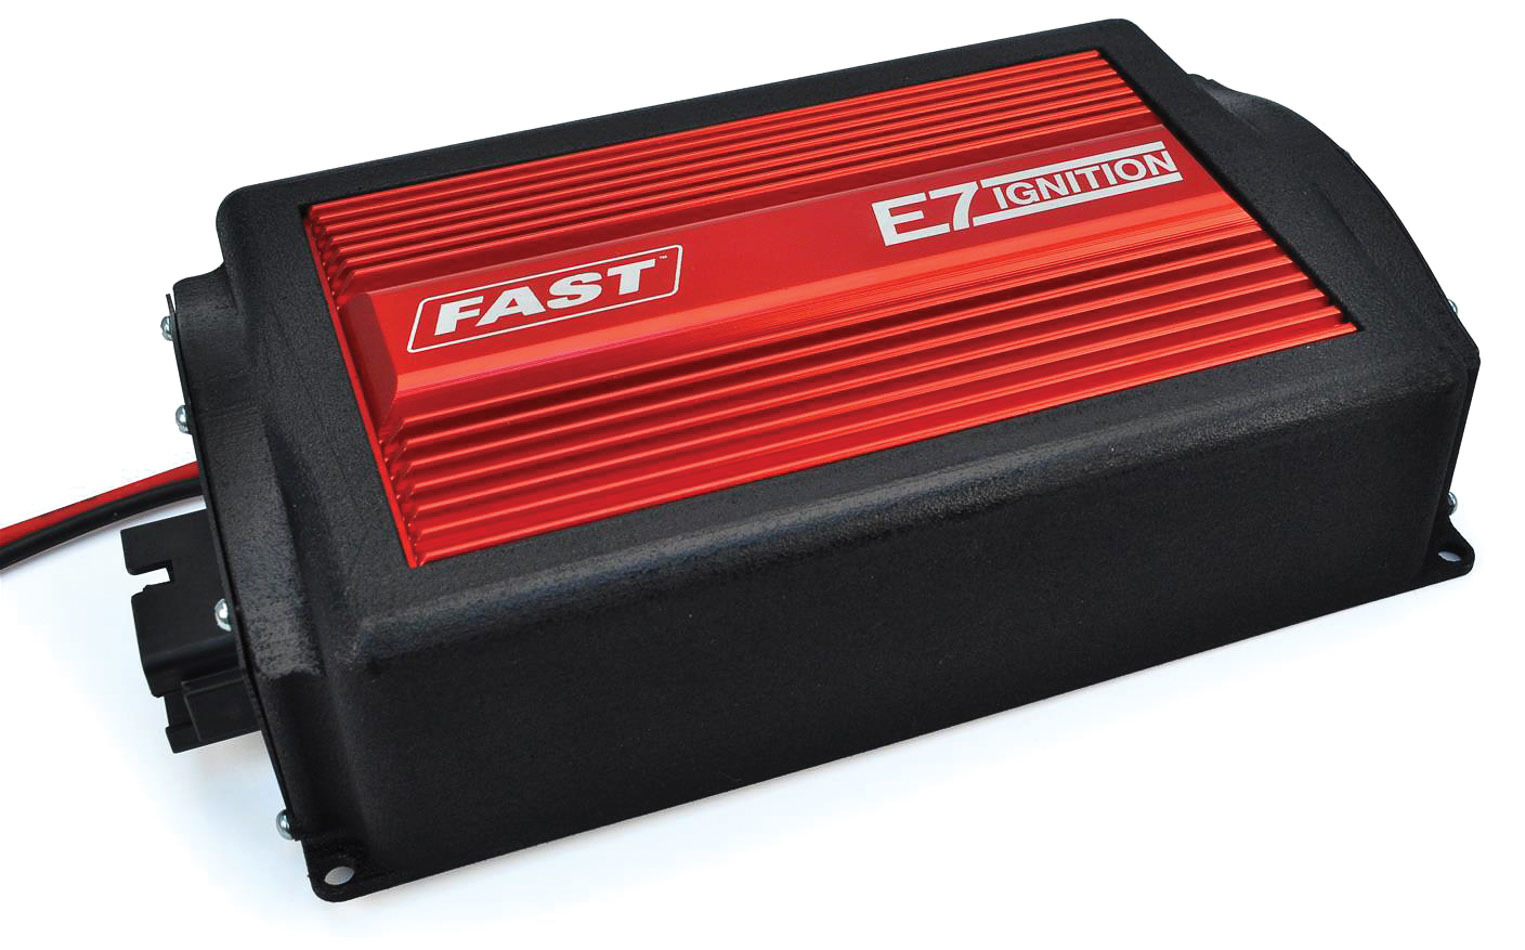 FAST 307222 Ignition Box, E7, Digital, CD Ignition, Multi-Spark, Rev Limiter, Coil and Coil Mount Included, Boost Retard, Kit